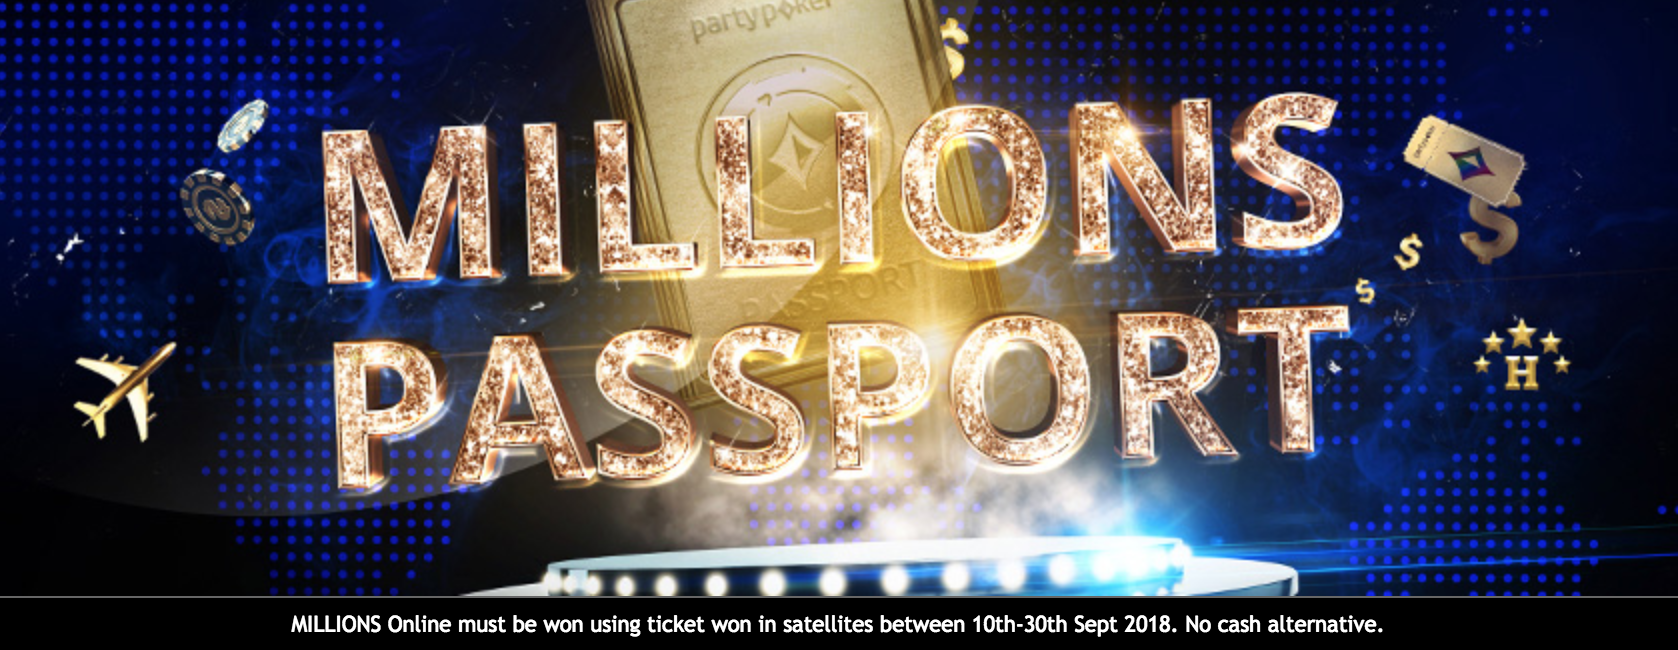 partypoker to give One Lucky Player a $500,000 MILLIONS